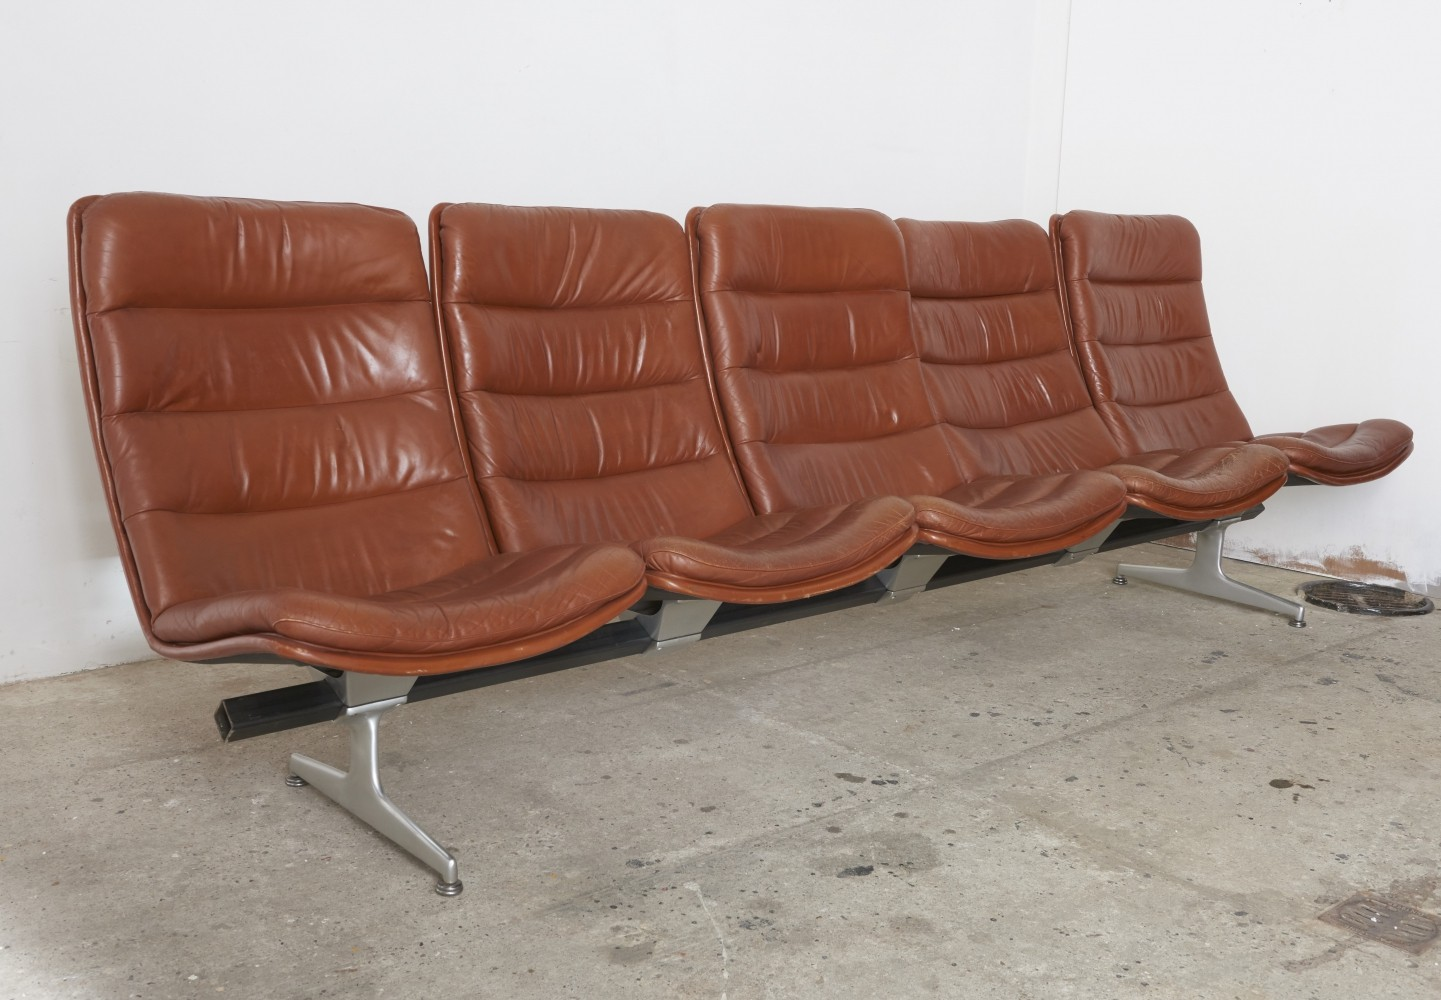 Timeless office or waiting area seating by Geoffrey D. Harcourt, 1968